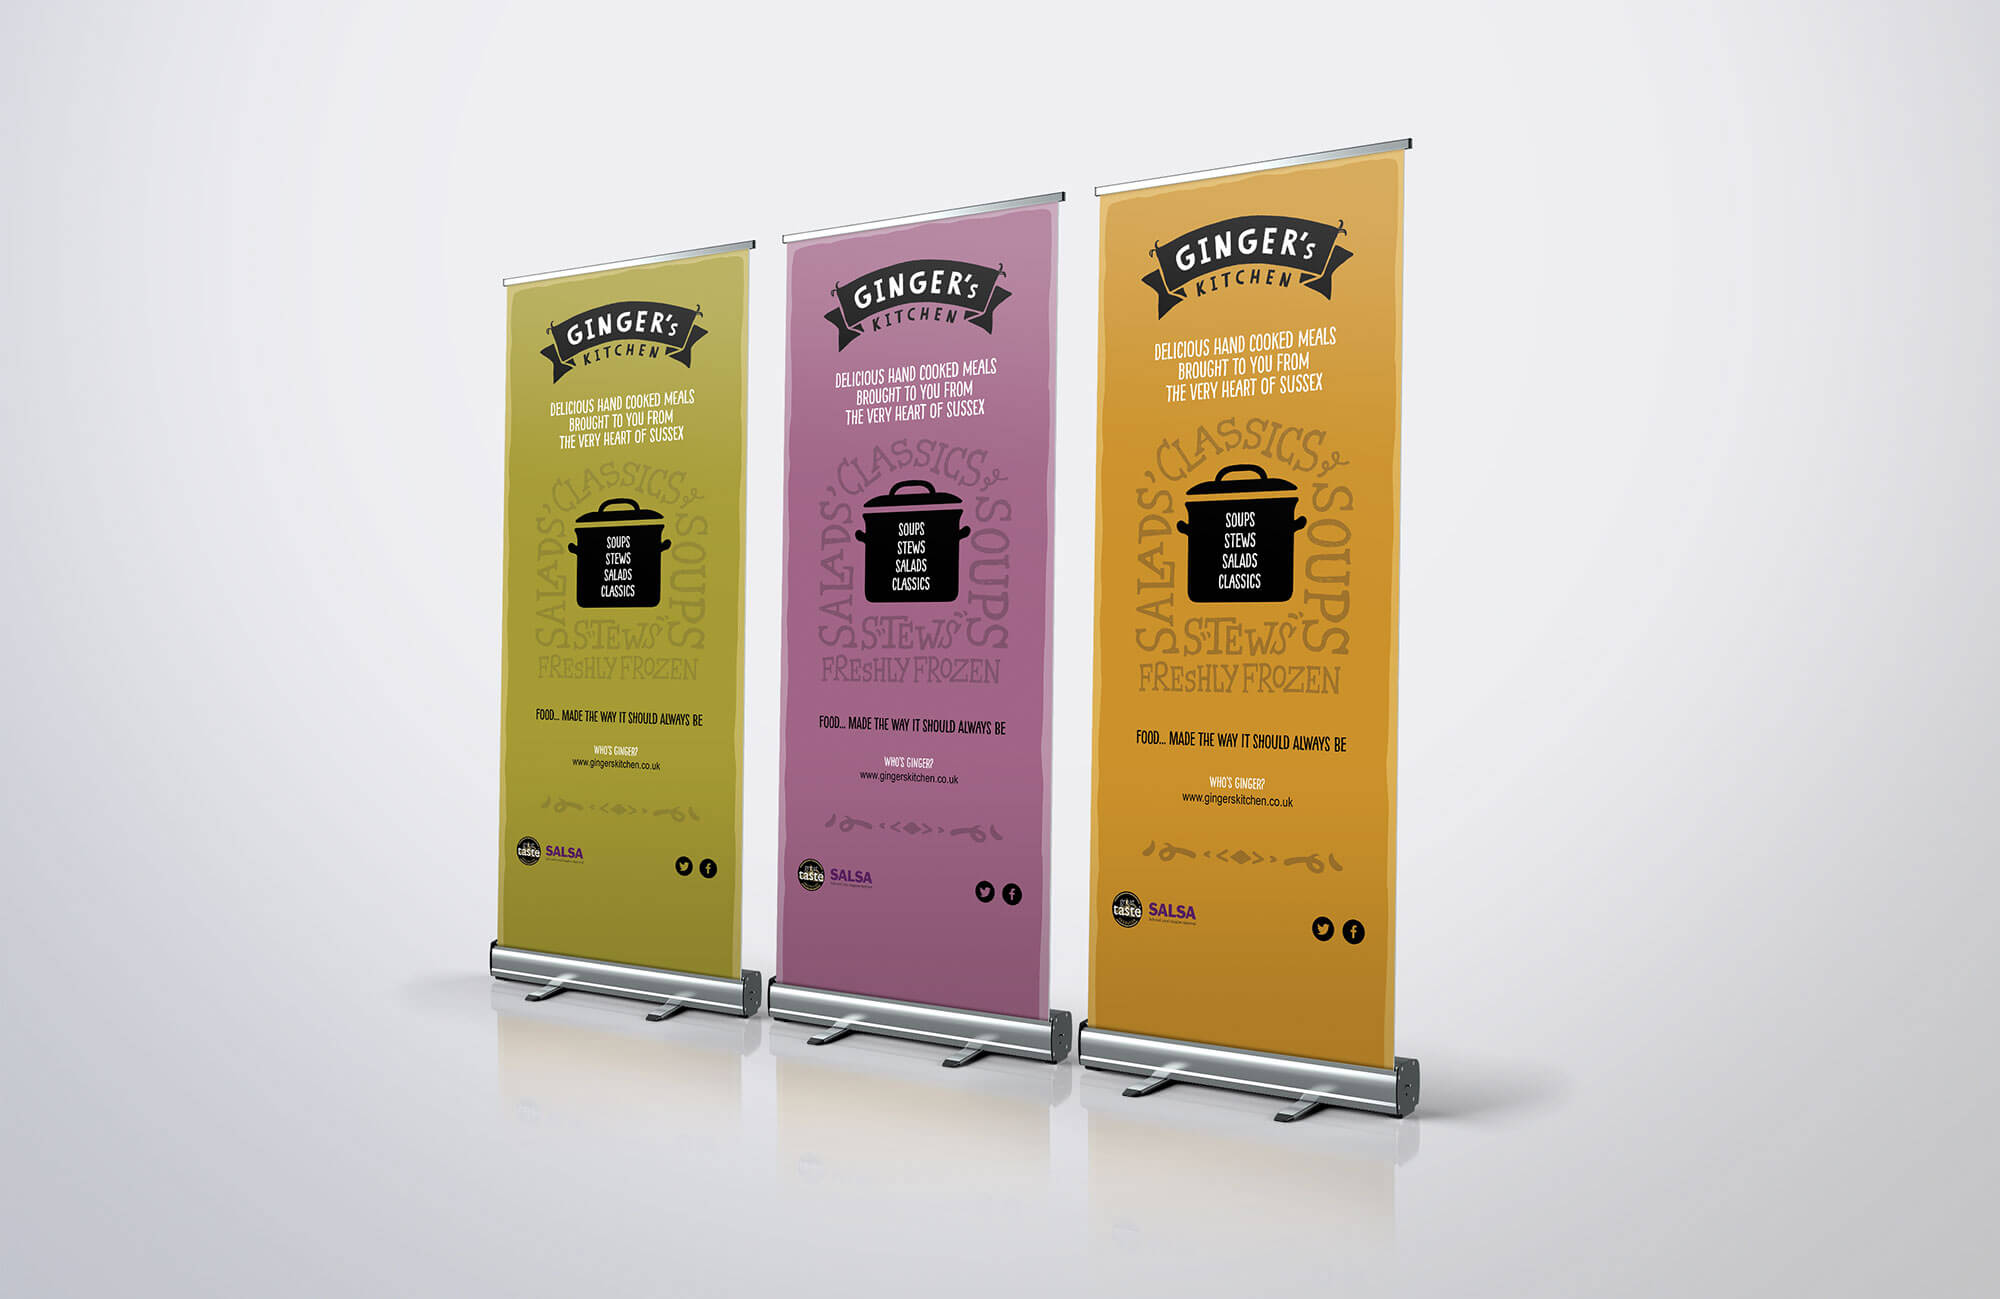 Ginger's Kitchen Roller Banner Design Concepts